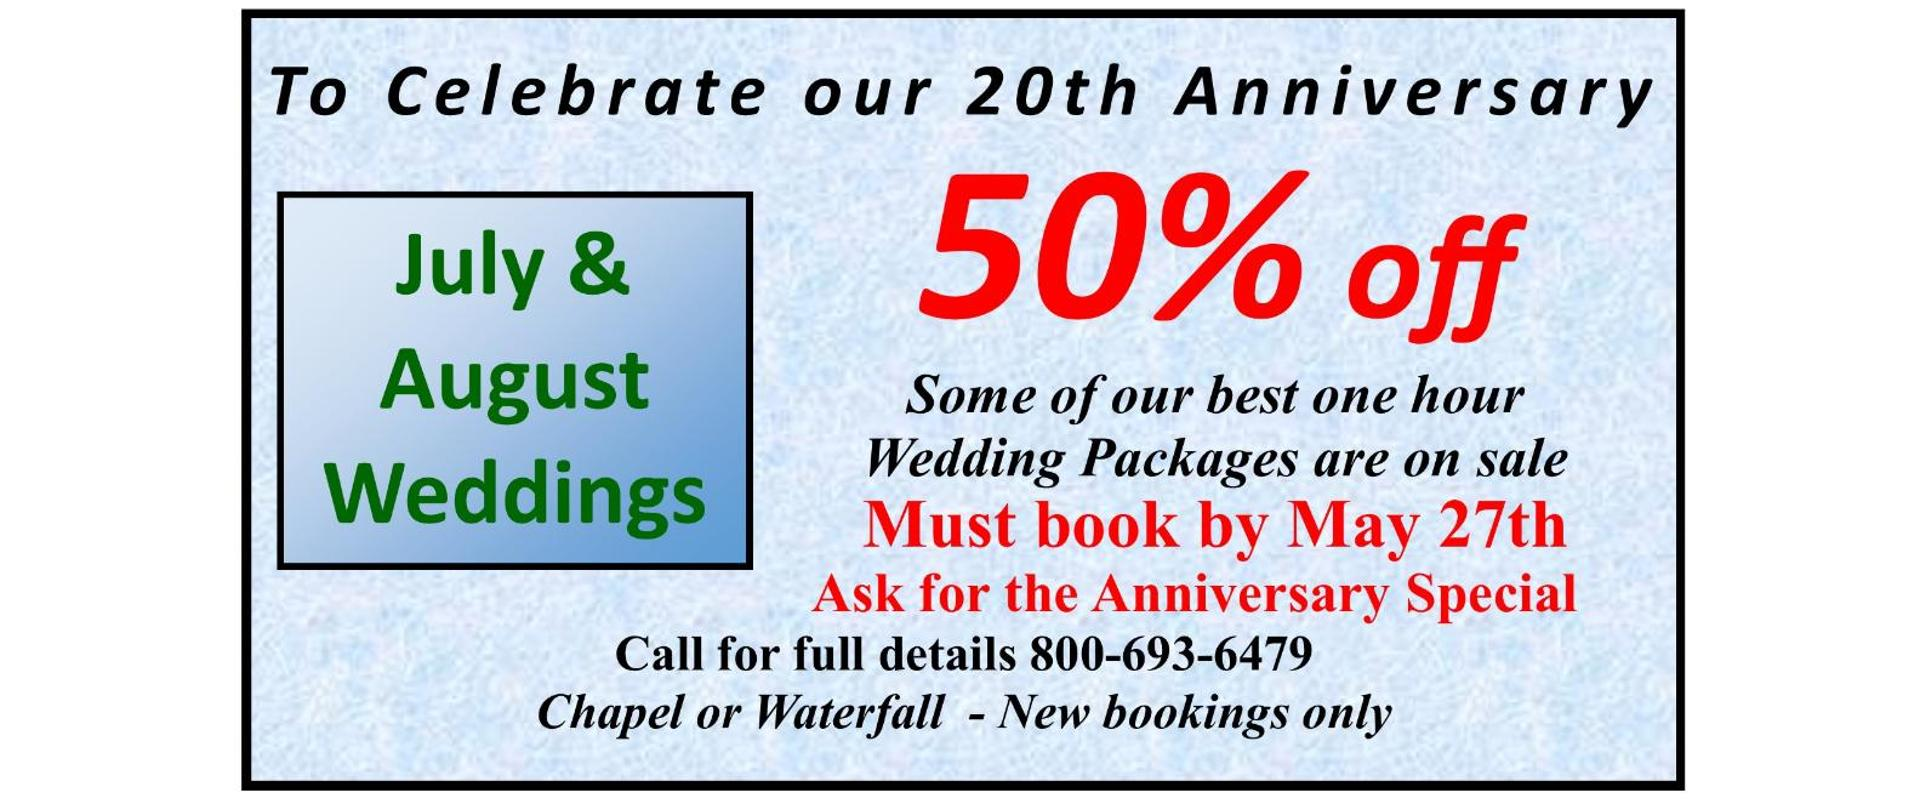 GWC - 20 year anniversary coupon May 16th.jpg